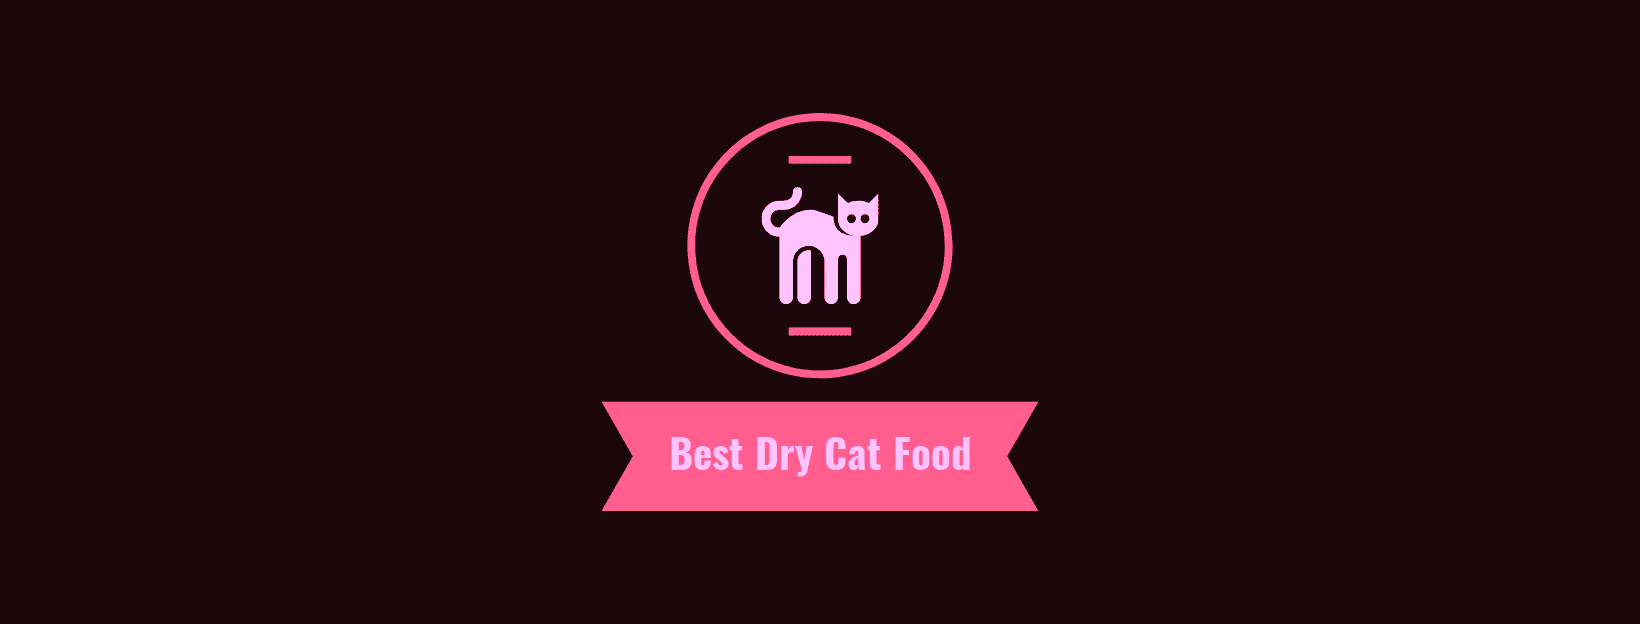 thebestdrycatfood.com, about us page